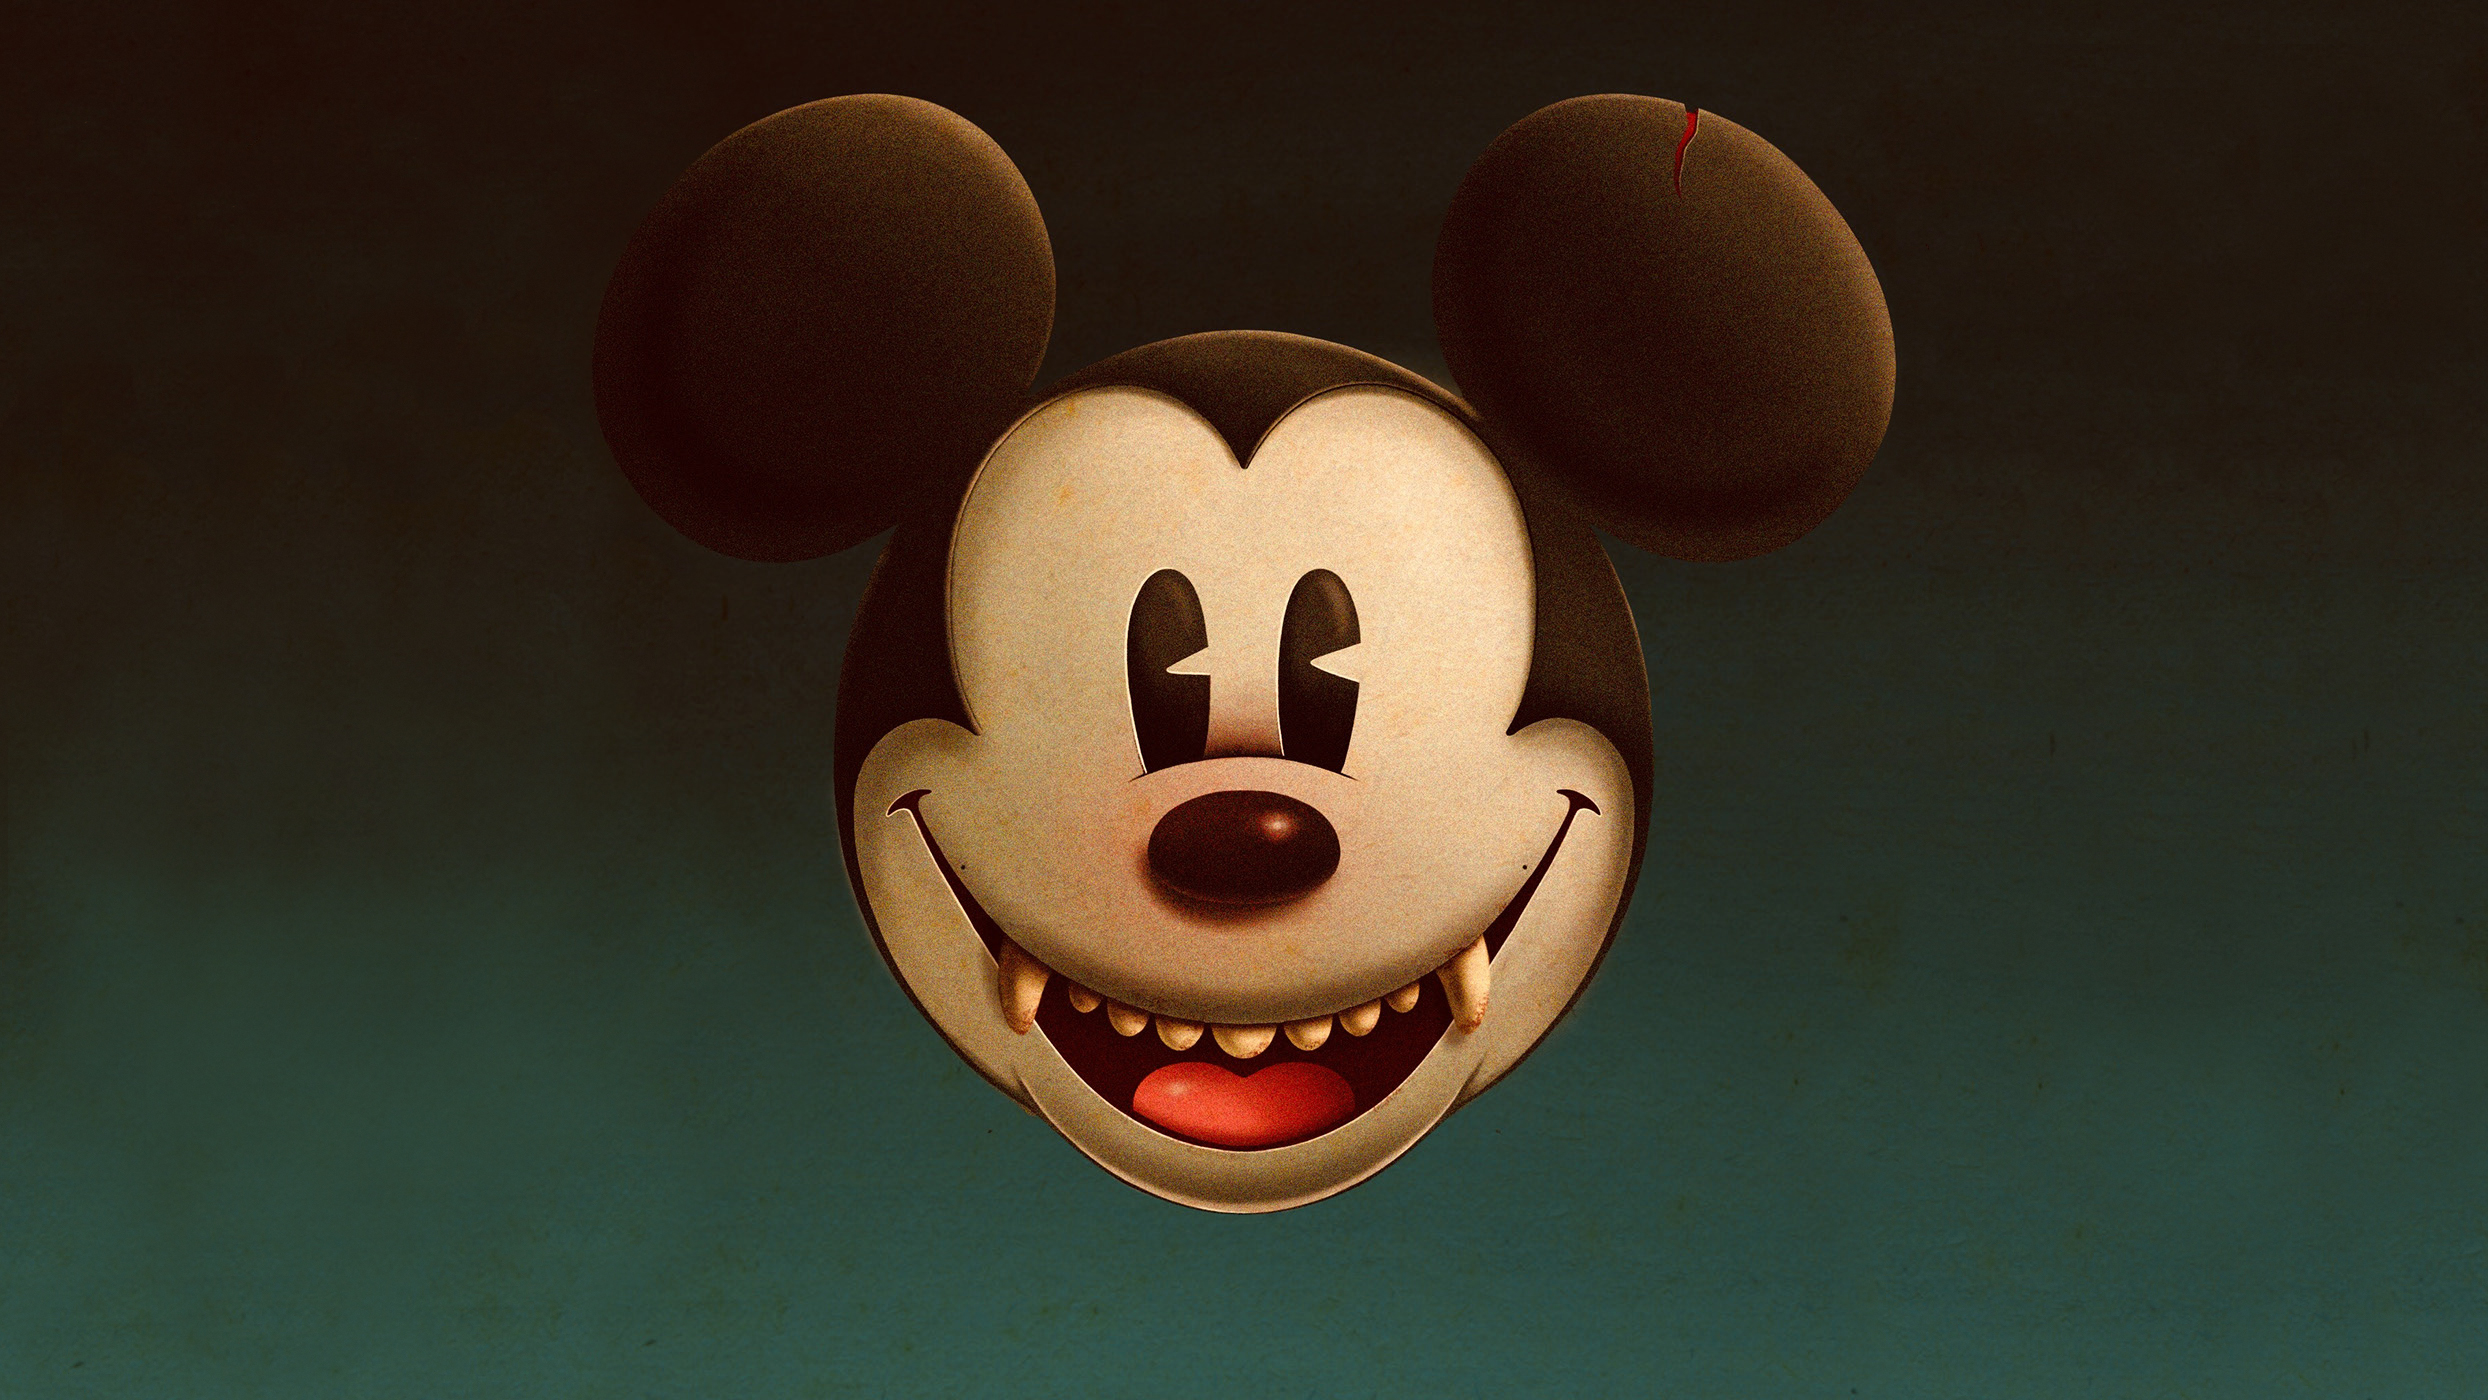 Evil Mickey Mouse Wallpaper Hd Artist 4k Wallpapers Images